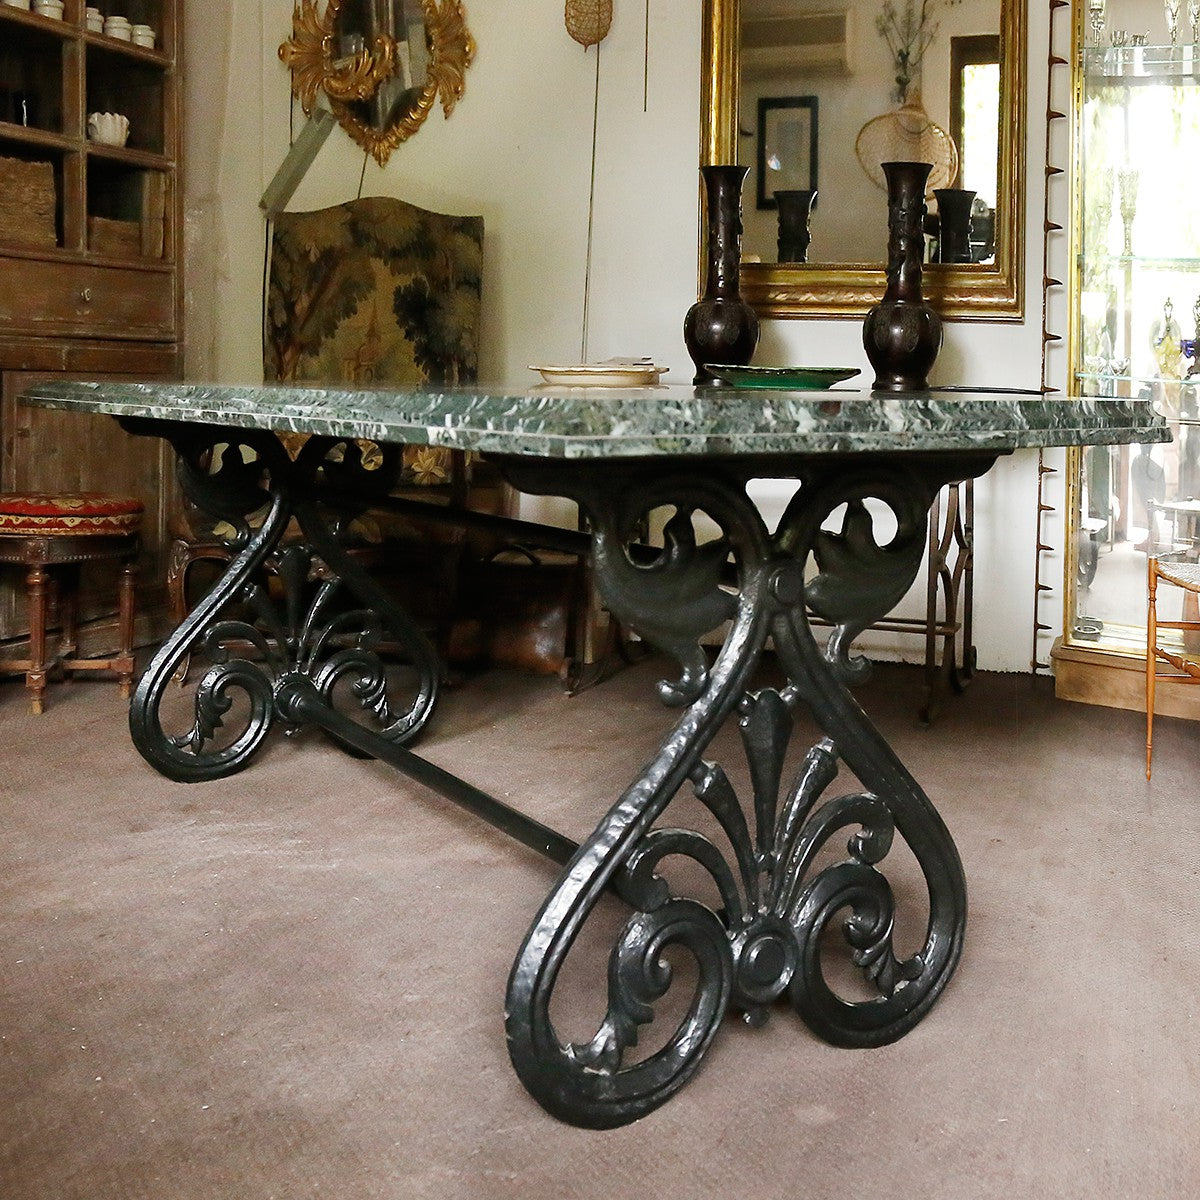 20th century French table in Cast Iron and Marble